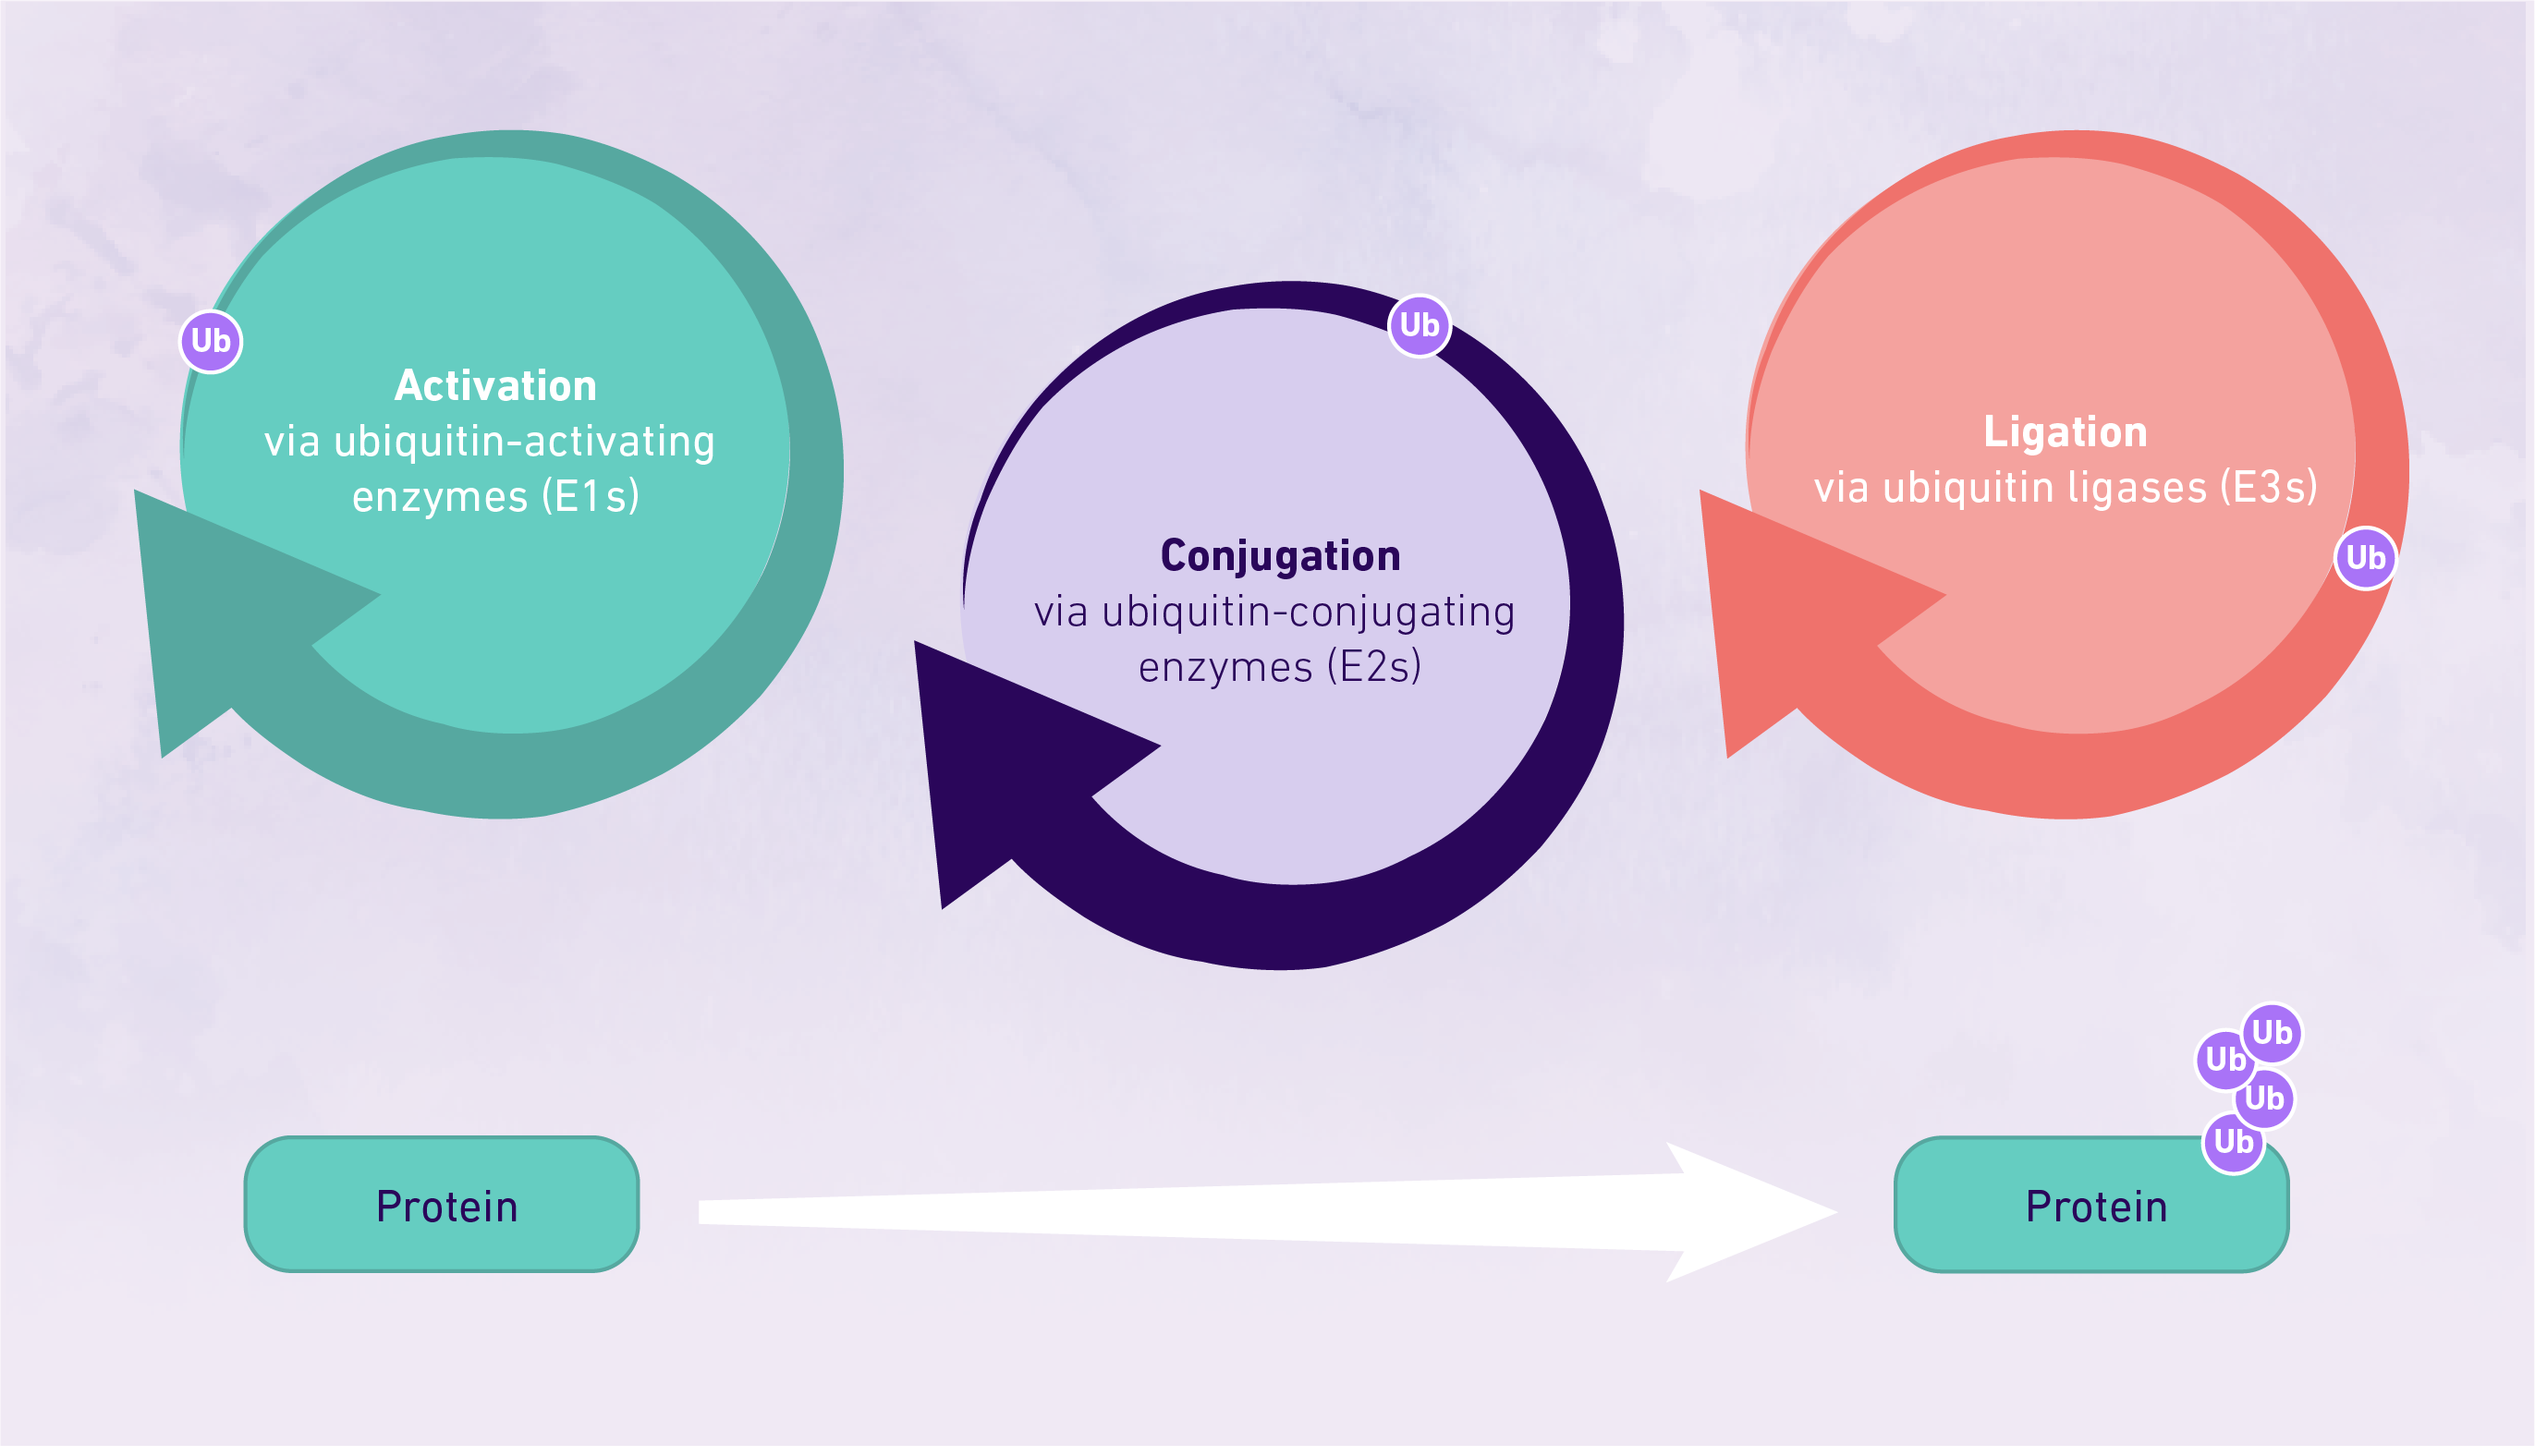 A picture showing the key steps involved in protein ubiquitination.